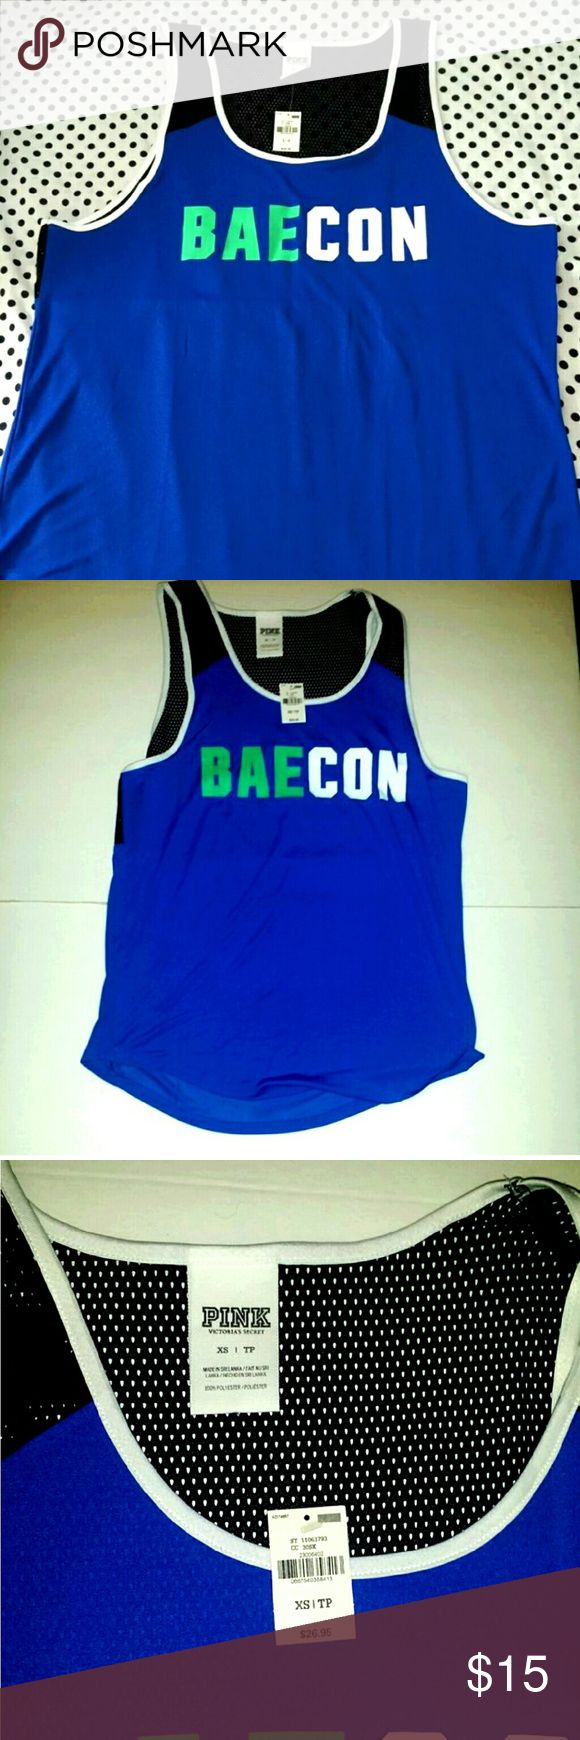 #PINK by Victoria Secret tank top mesh NWT #VictoriaSecret #PINK tank top Brand new with tags from the pink store by Victoria Secrets is the ultimate material tank top with mesh black backing and Royal blue fabric. It says #Bae con on the front-a play on the word #Bae (Before Anyone Else) and Bacon. Size L, size XS, and size S. Retail price $26.95. PINK Victoria's Secret Tops Tank Tops